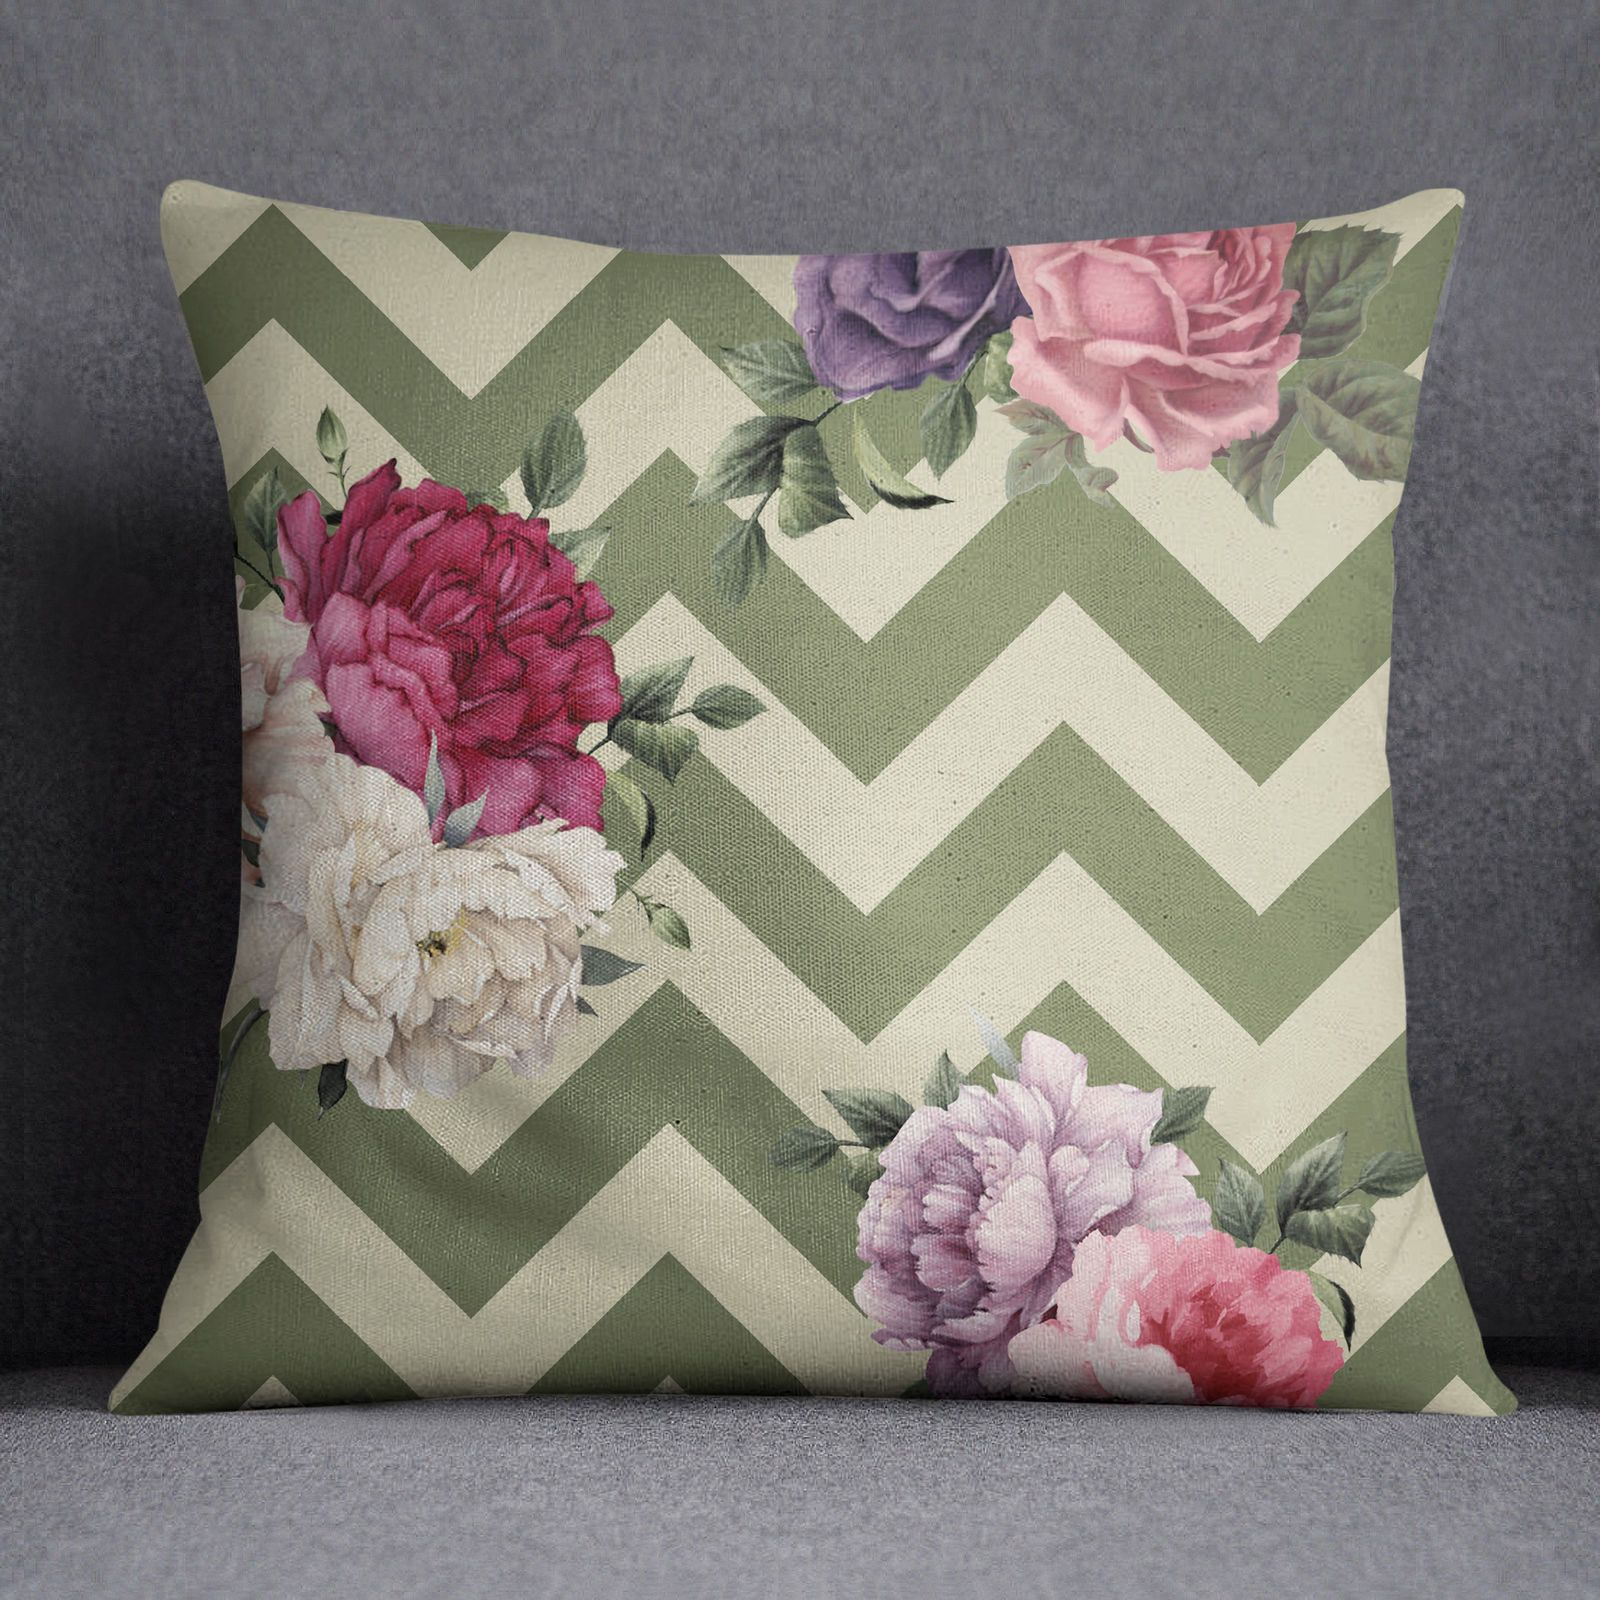 Ssassy sofa cushion cover green zigzag u floral print pillow case